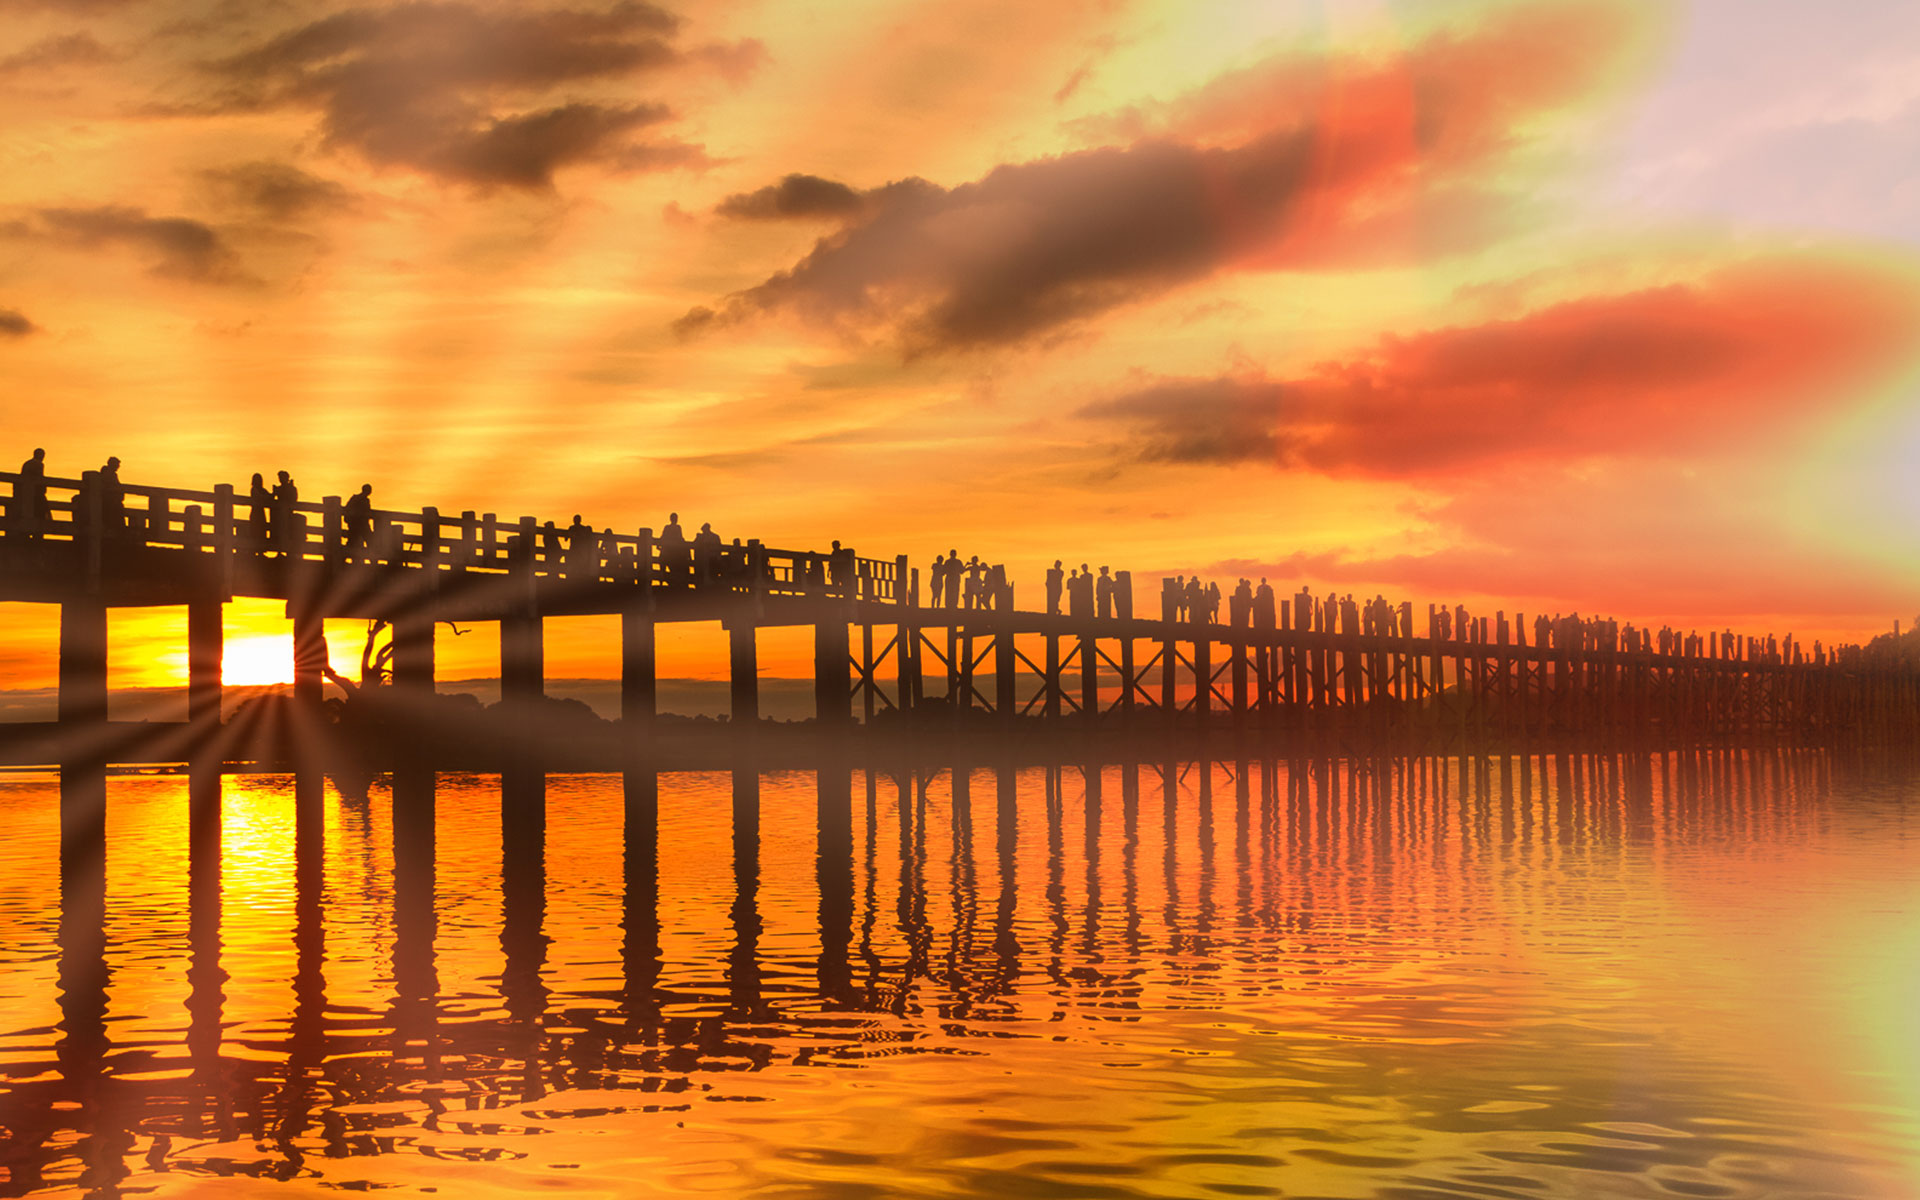 sunset in U Bein bridge mandalay myanmar